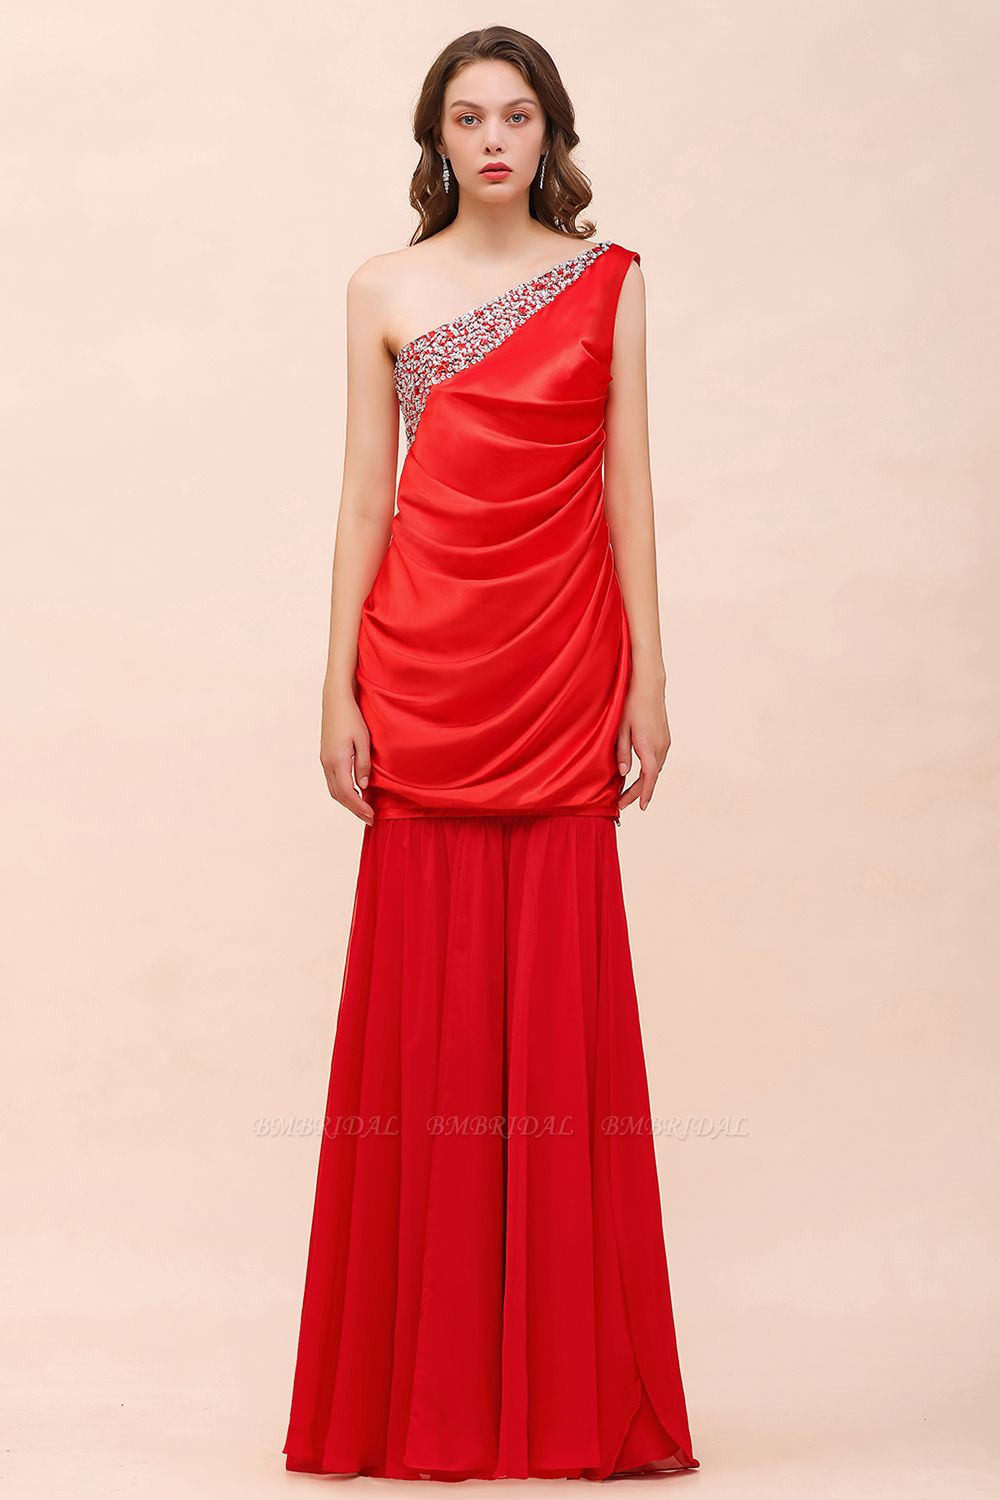 BMbridal Chic One Shoulder Beading Ruffle Red Bridesmaid Dress with Detachable Skirt